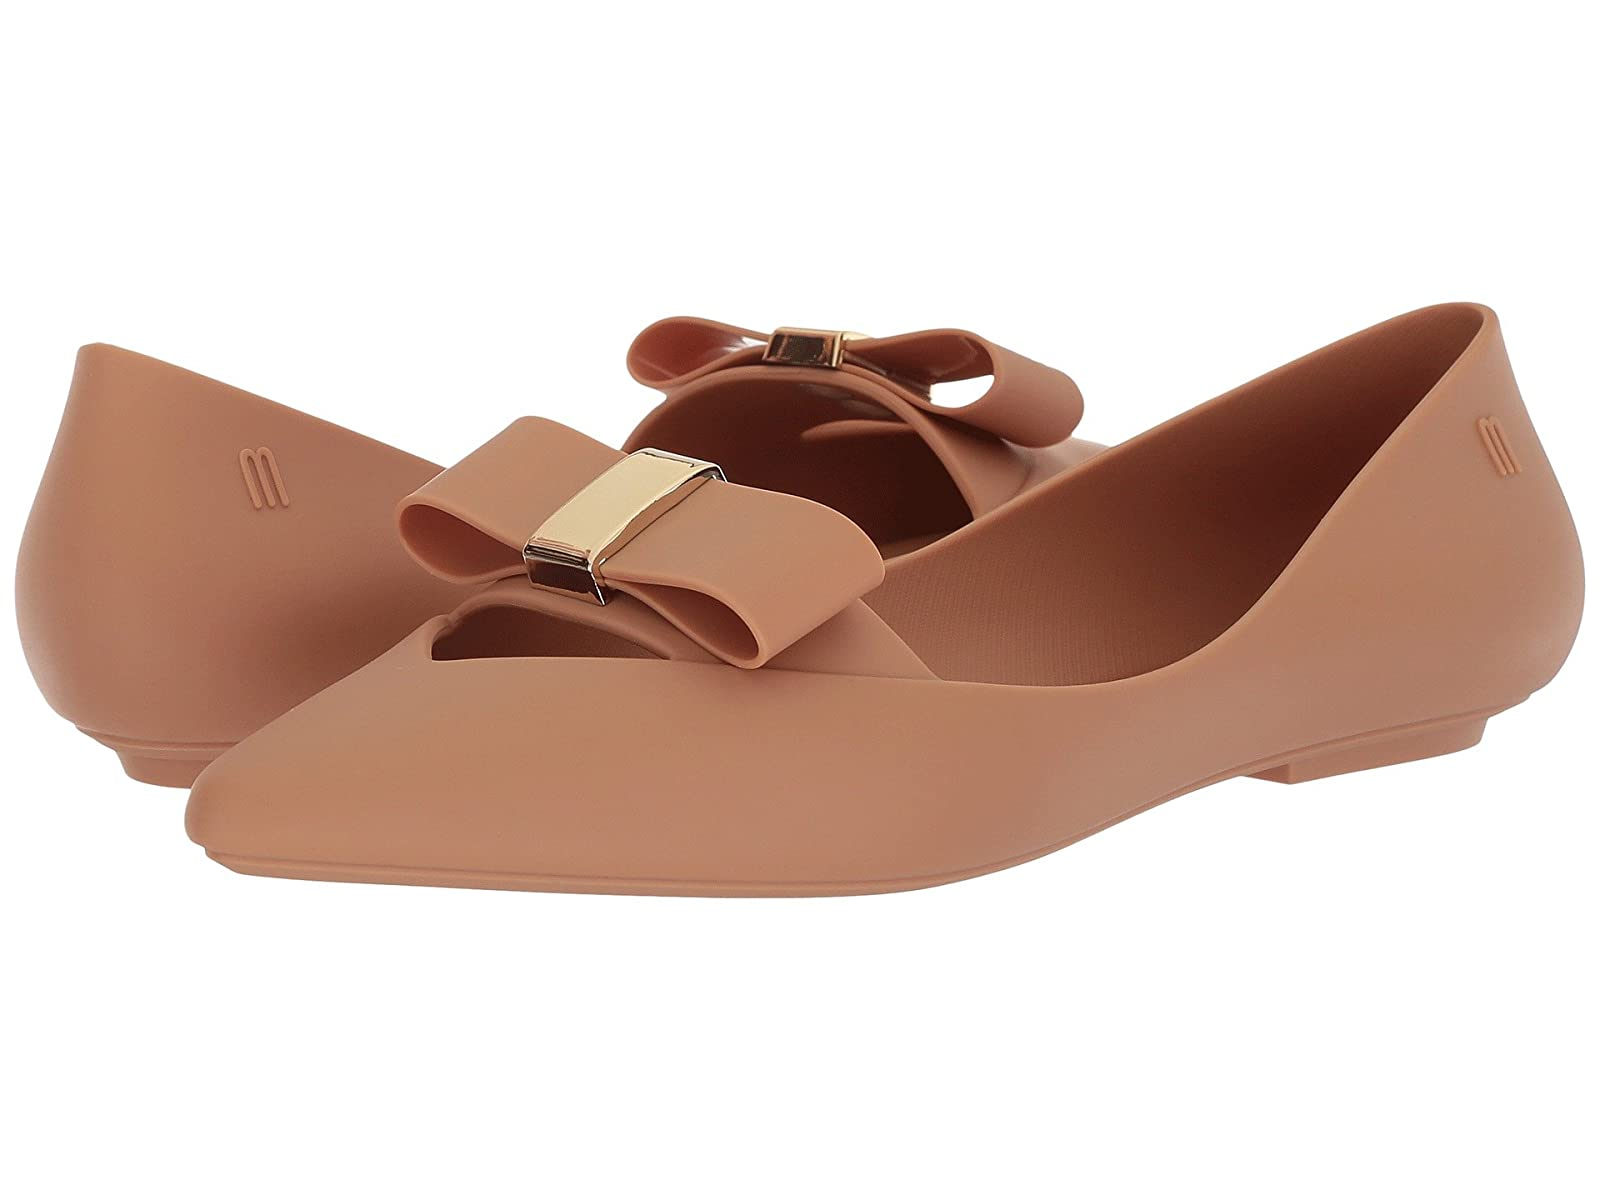 Melissa Shoes Maisie IICheap and distinctive eye-catching shoes